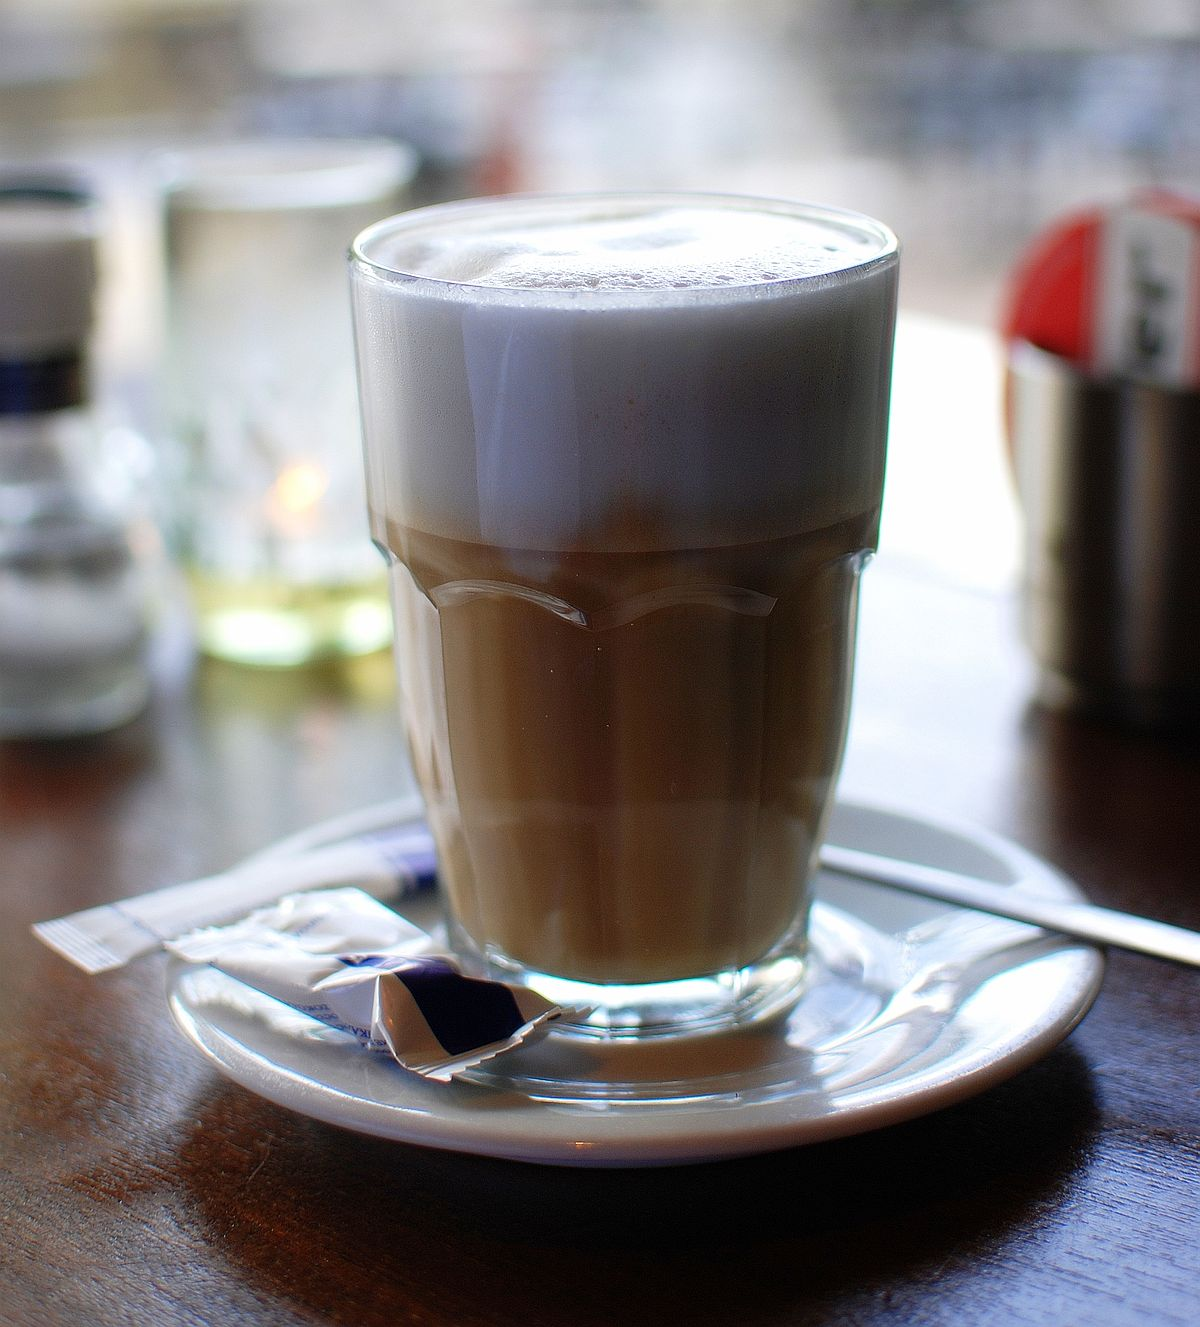 Latte And Cappuccino Are The Two Most Popular Coffee Types In The Uk